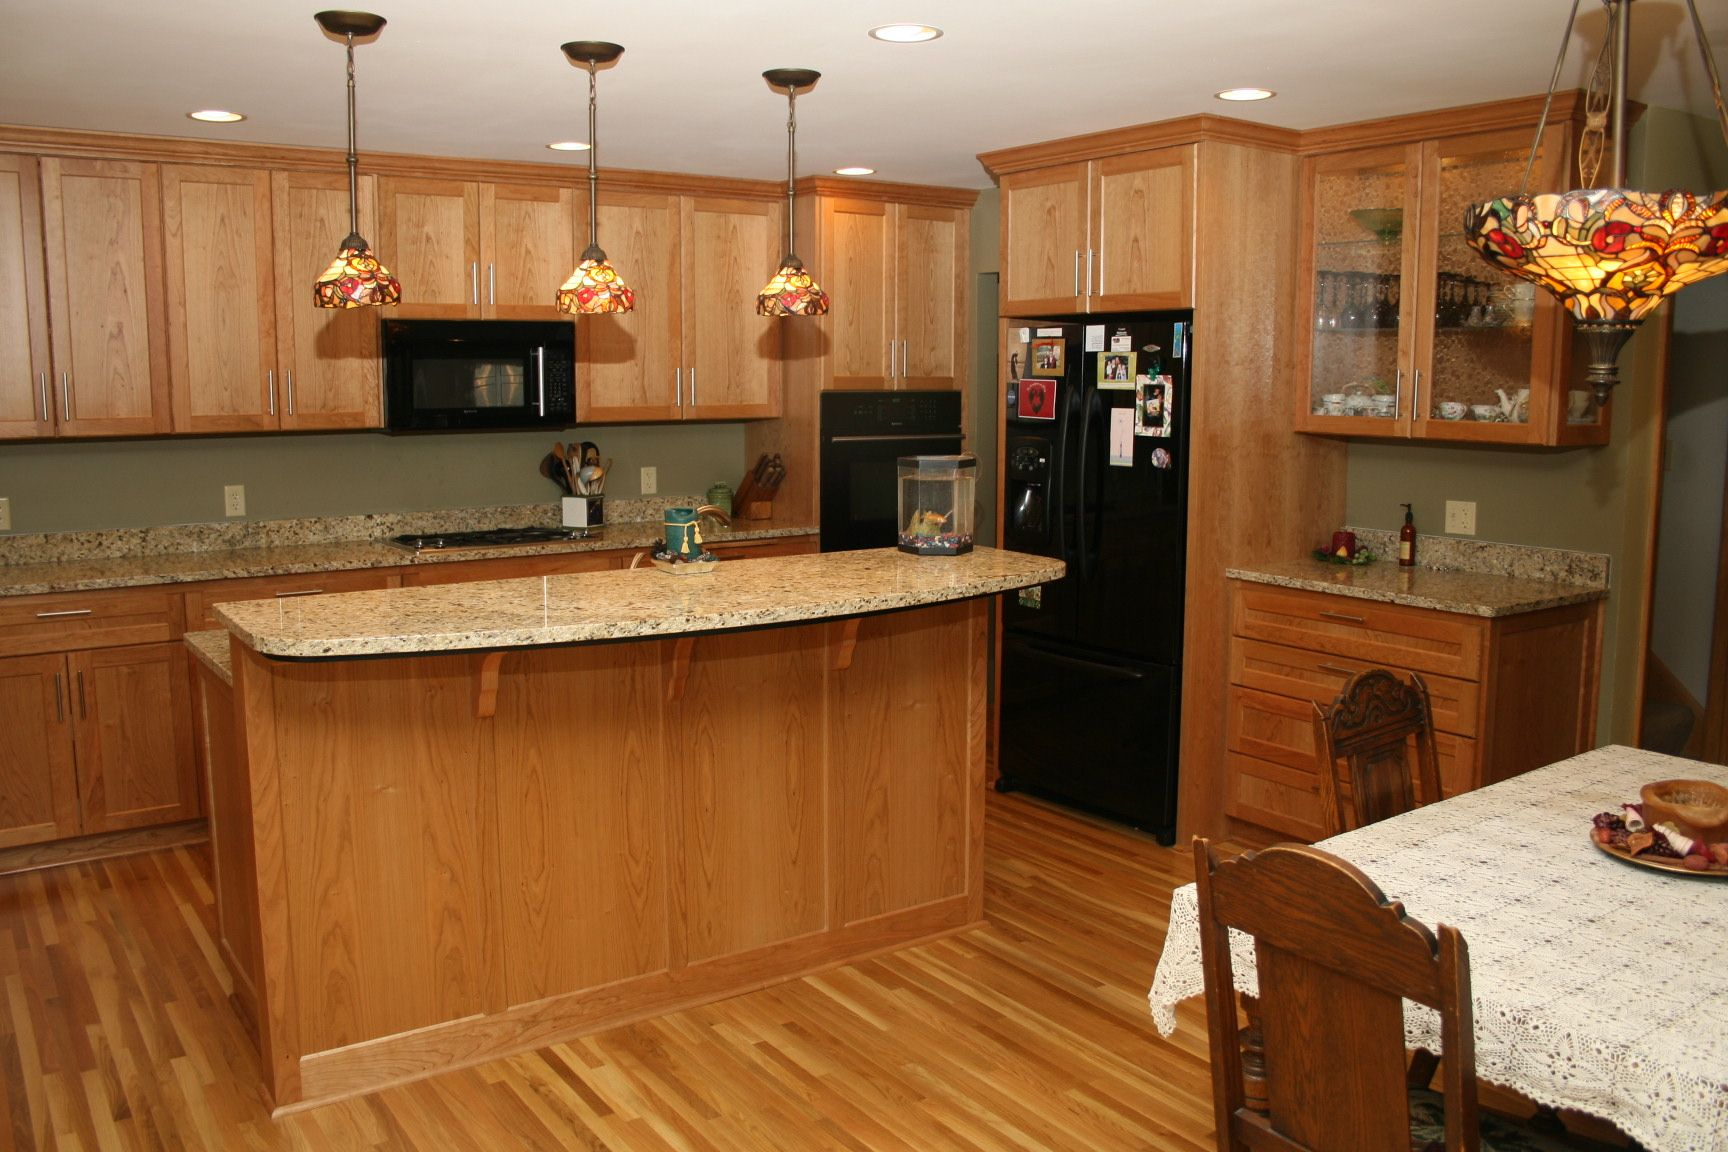 Oak Kitchen Cabinets Granite Countertop Protime Construction Minneapolis St Paul Minnesota